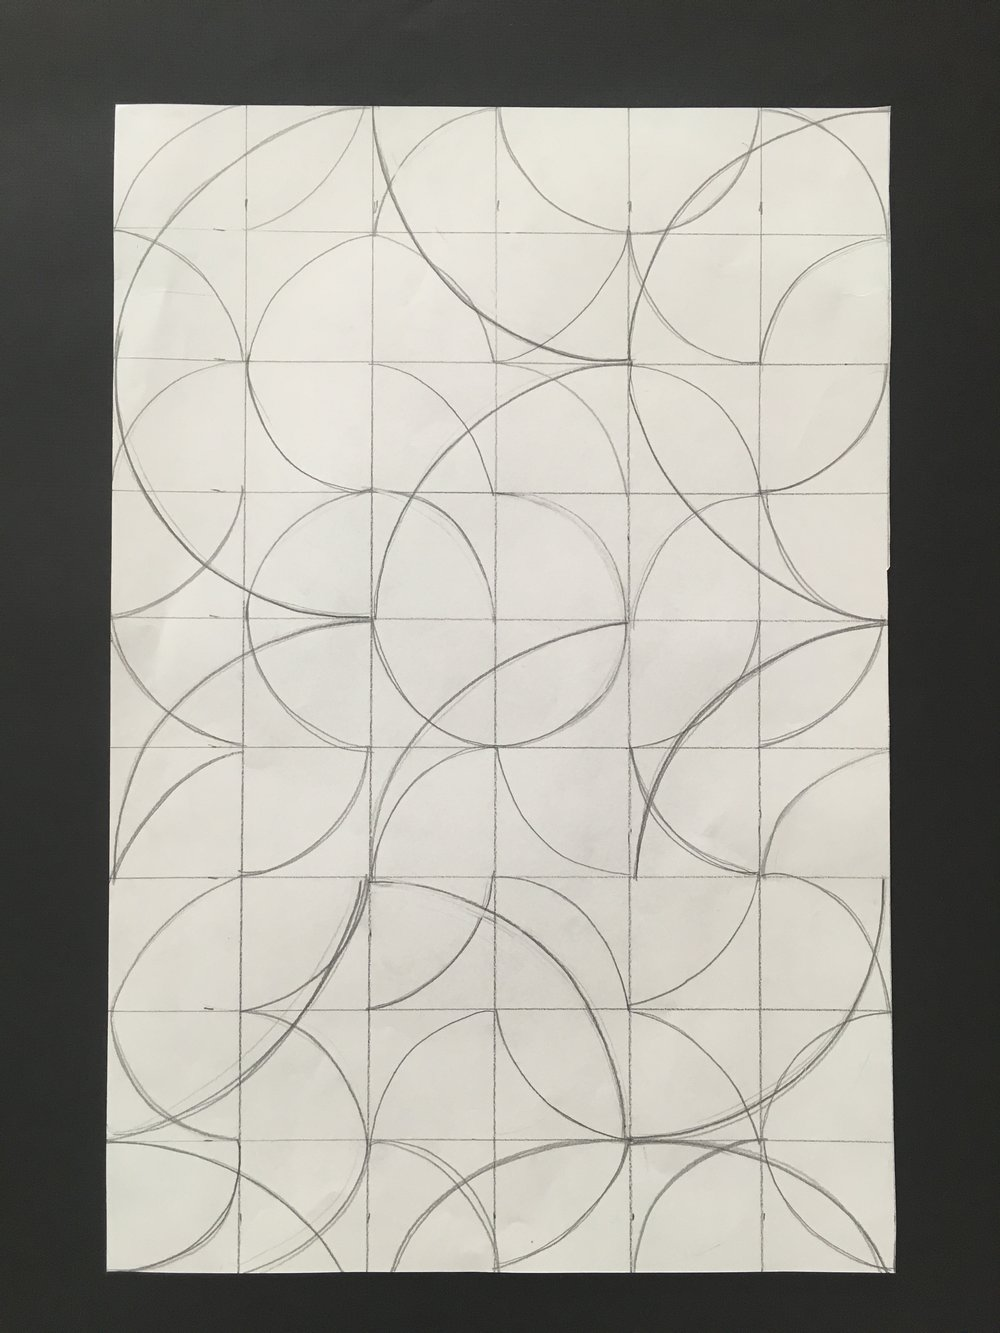 Grid-based abstraction using variations on a single stroke/line.